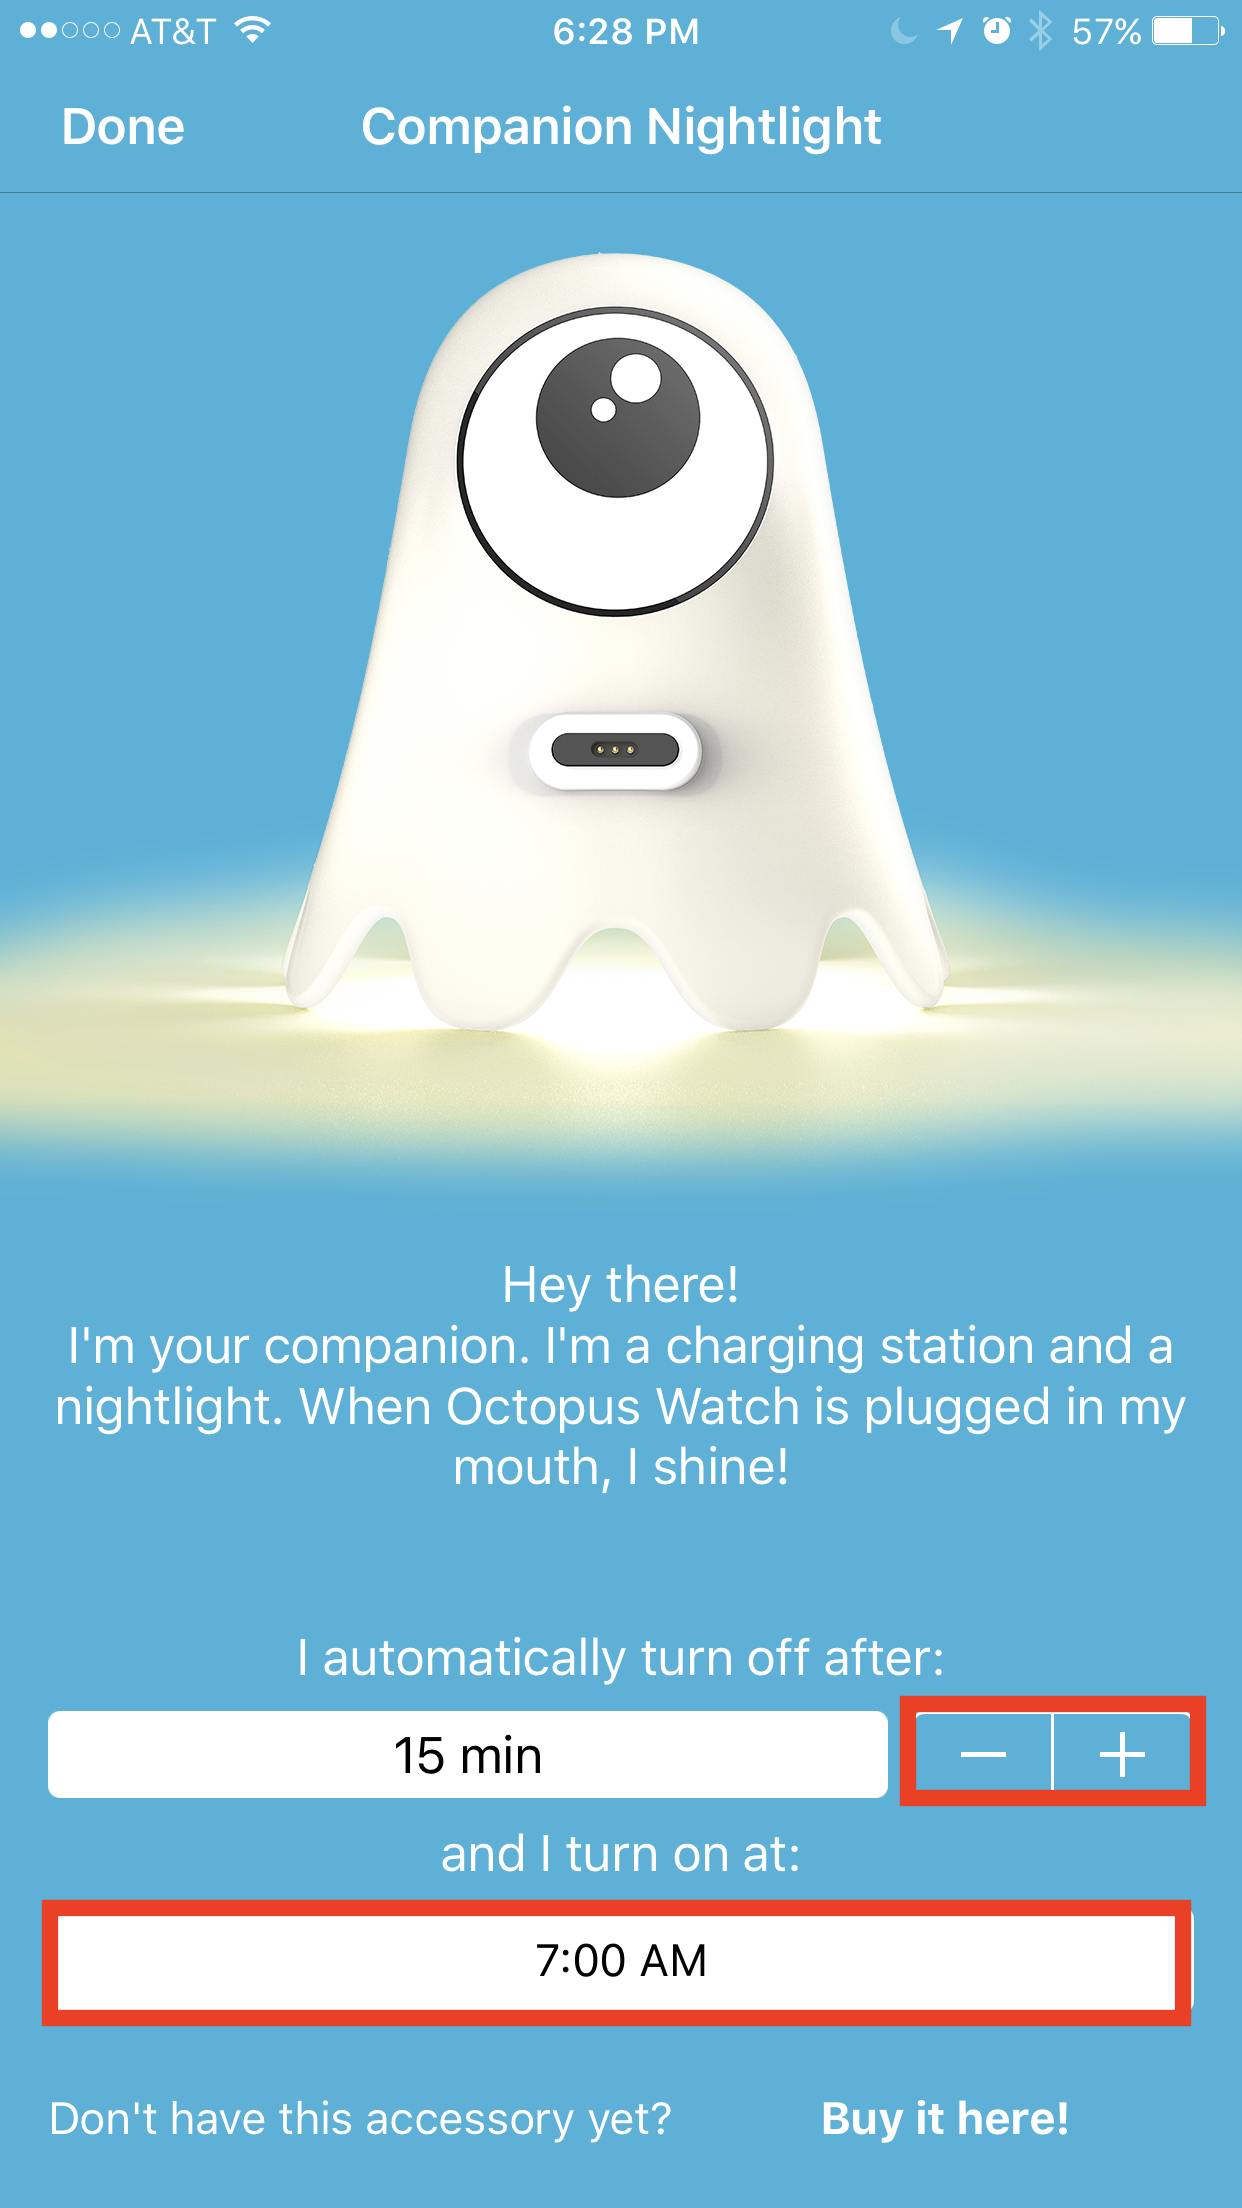 Octopus watch app: program the companion night light